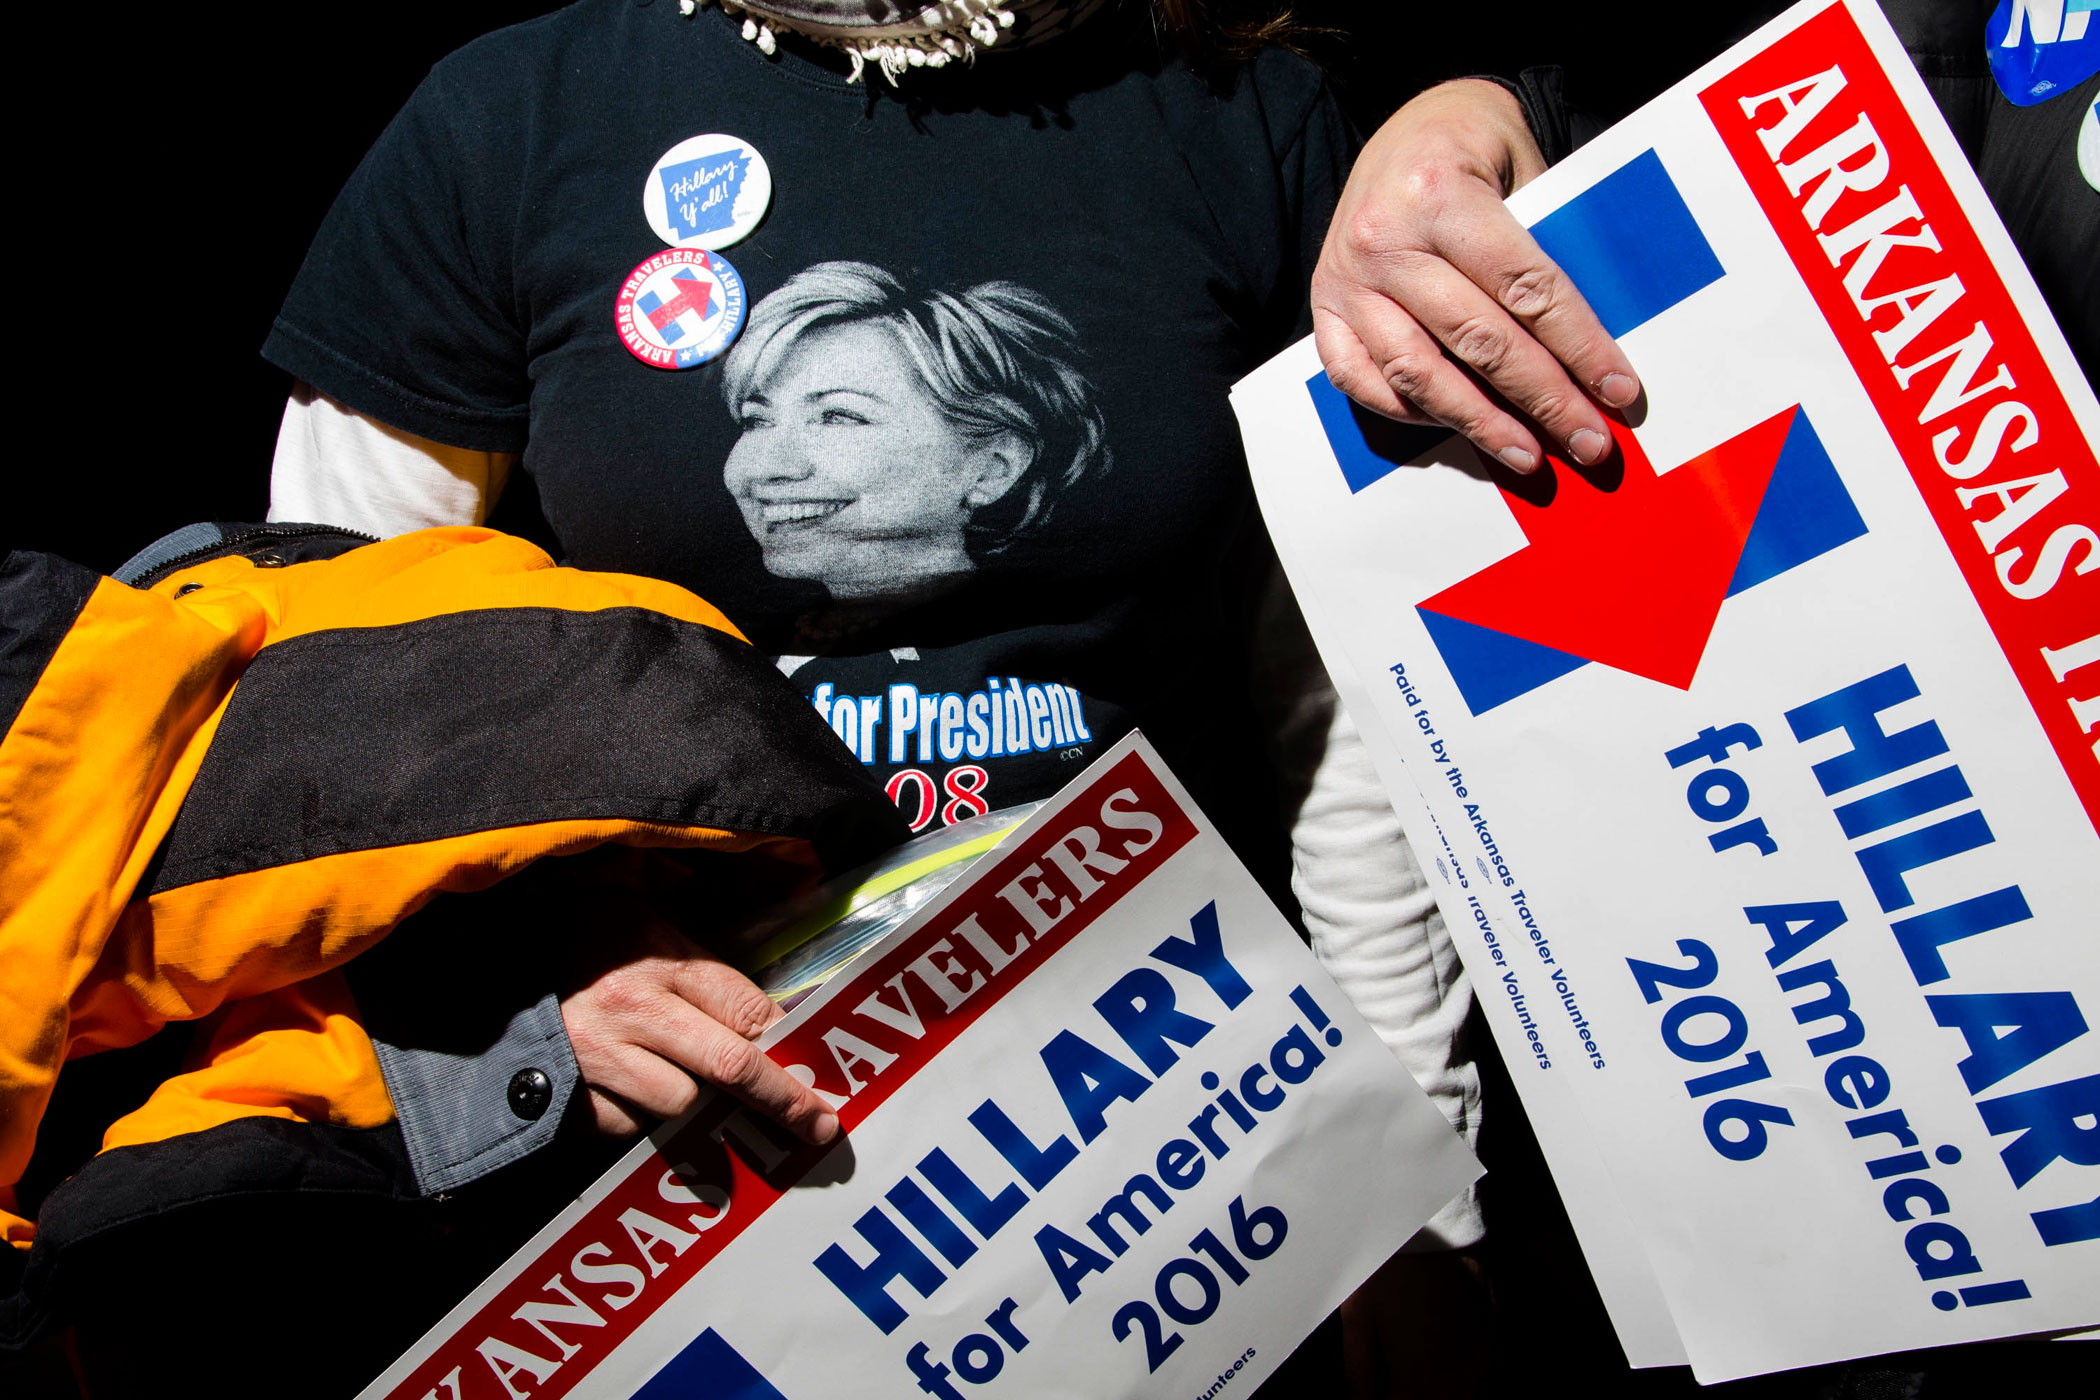 Supporters of former Secretary of State Hillary Clinton attend a campaign event at Great Bay Community College on Feb. 6, 2016, in Portsmouth, N.H.